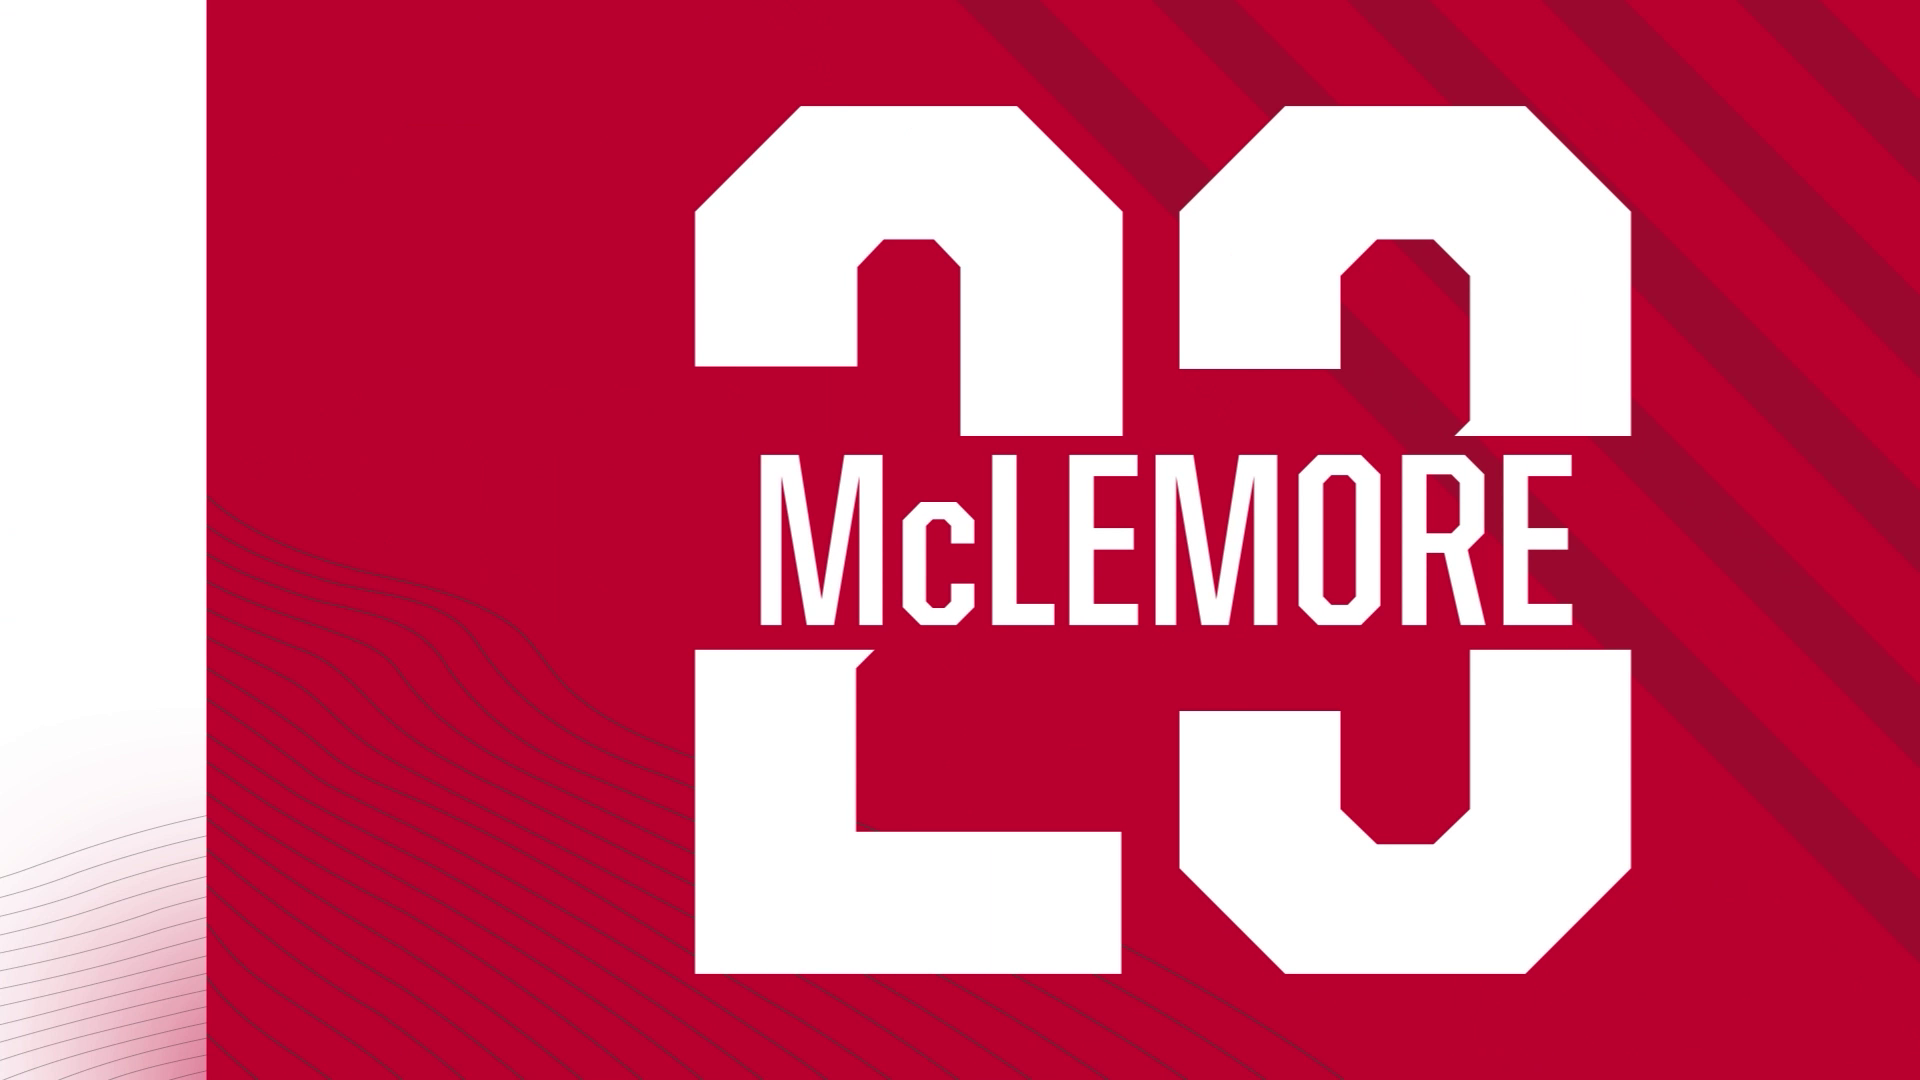 Get To Know_Ben McLemore_16x9.mp4